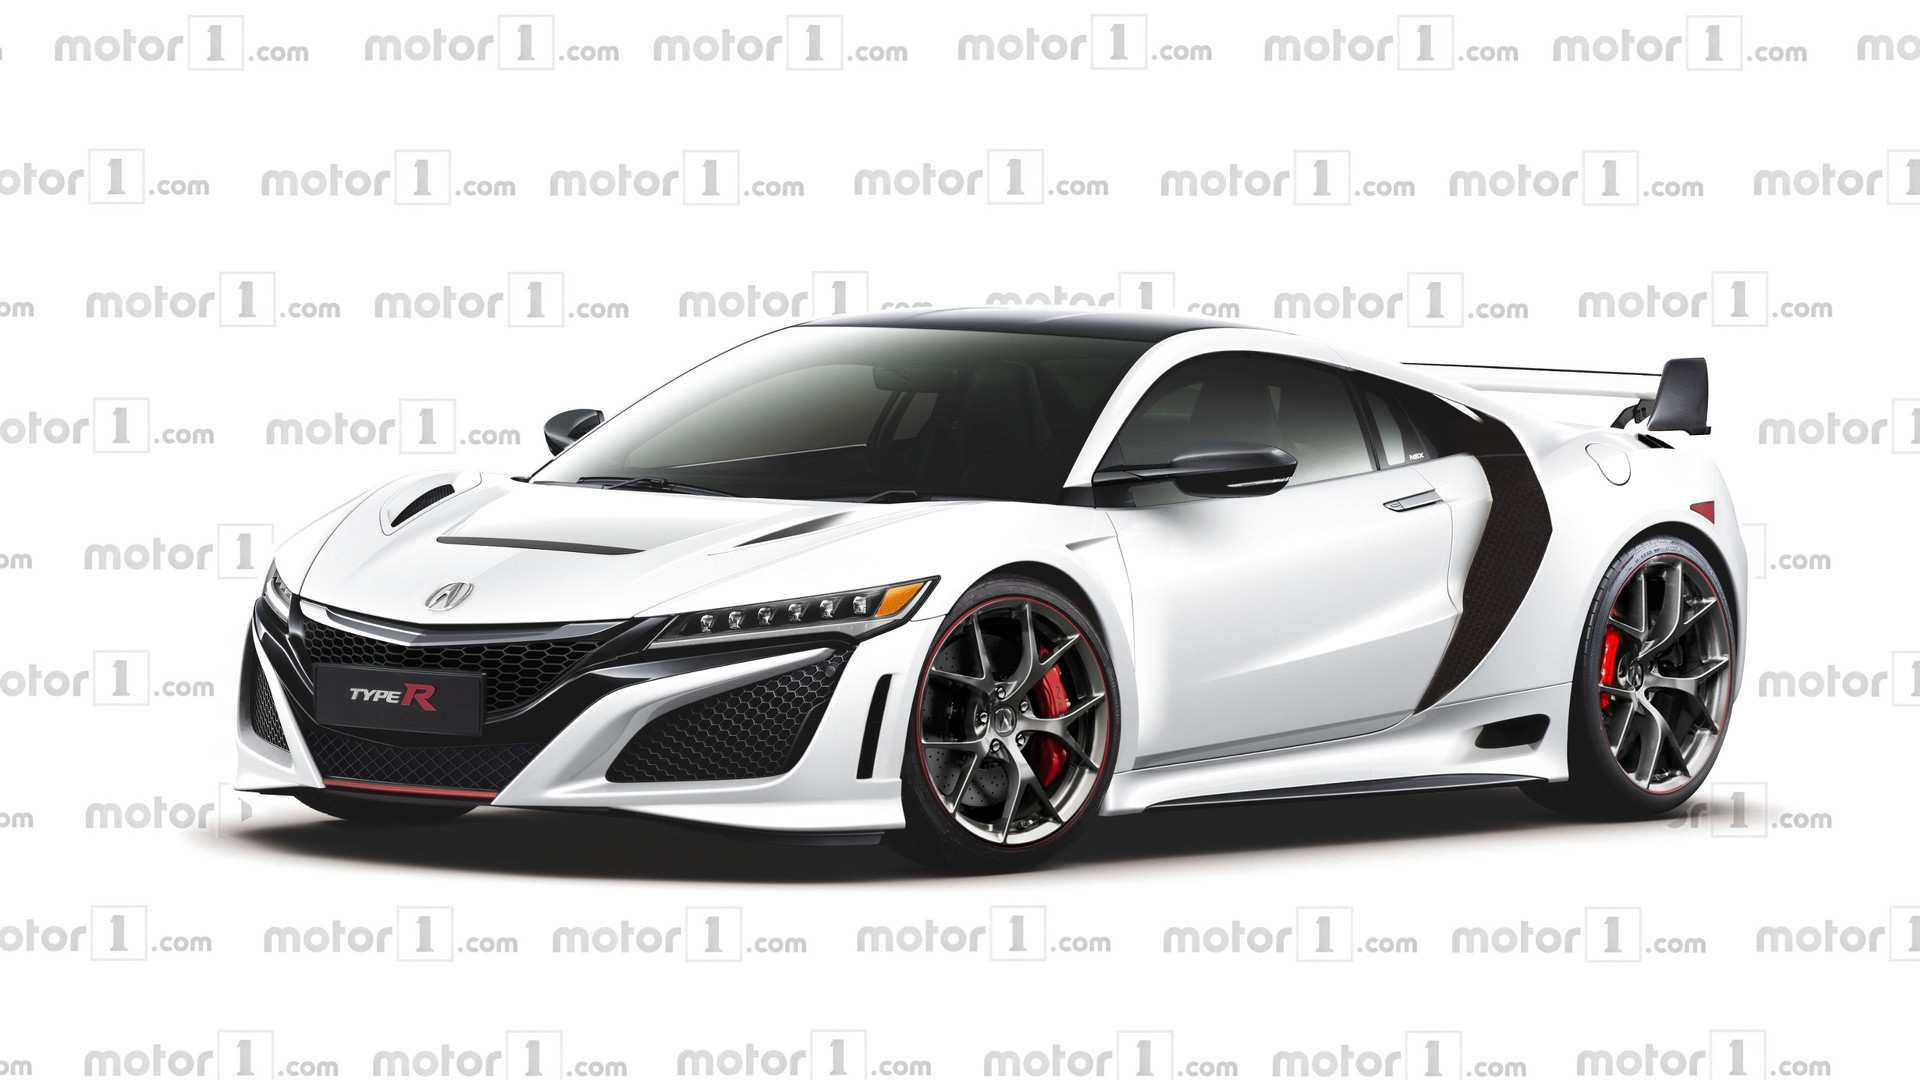 31 Great Acura Nsx 2020 Prices for Acura Nsx 2020